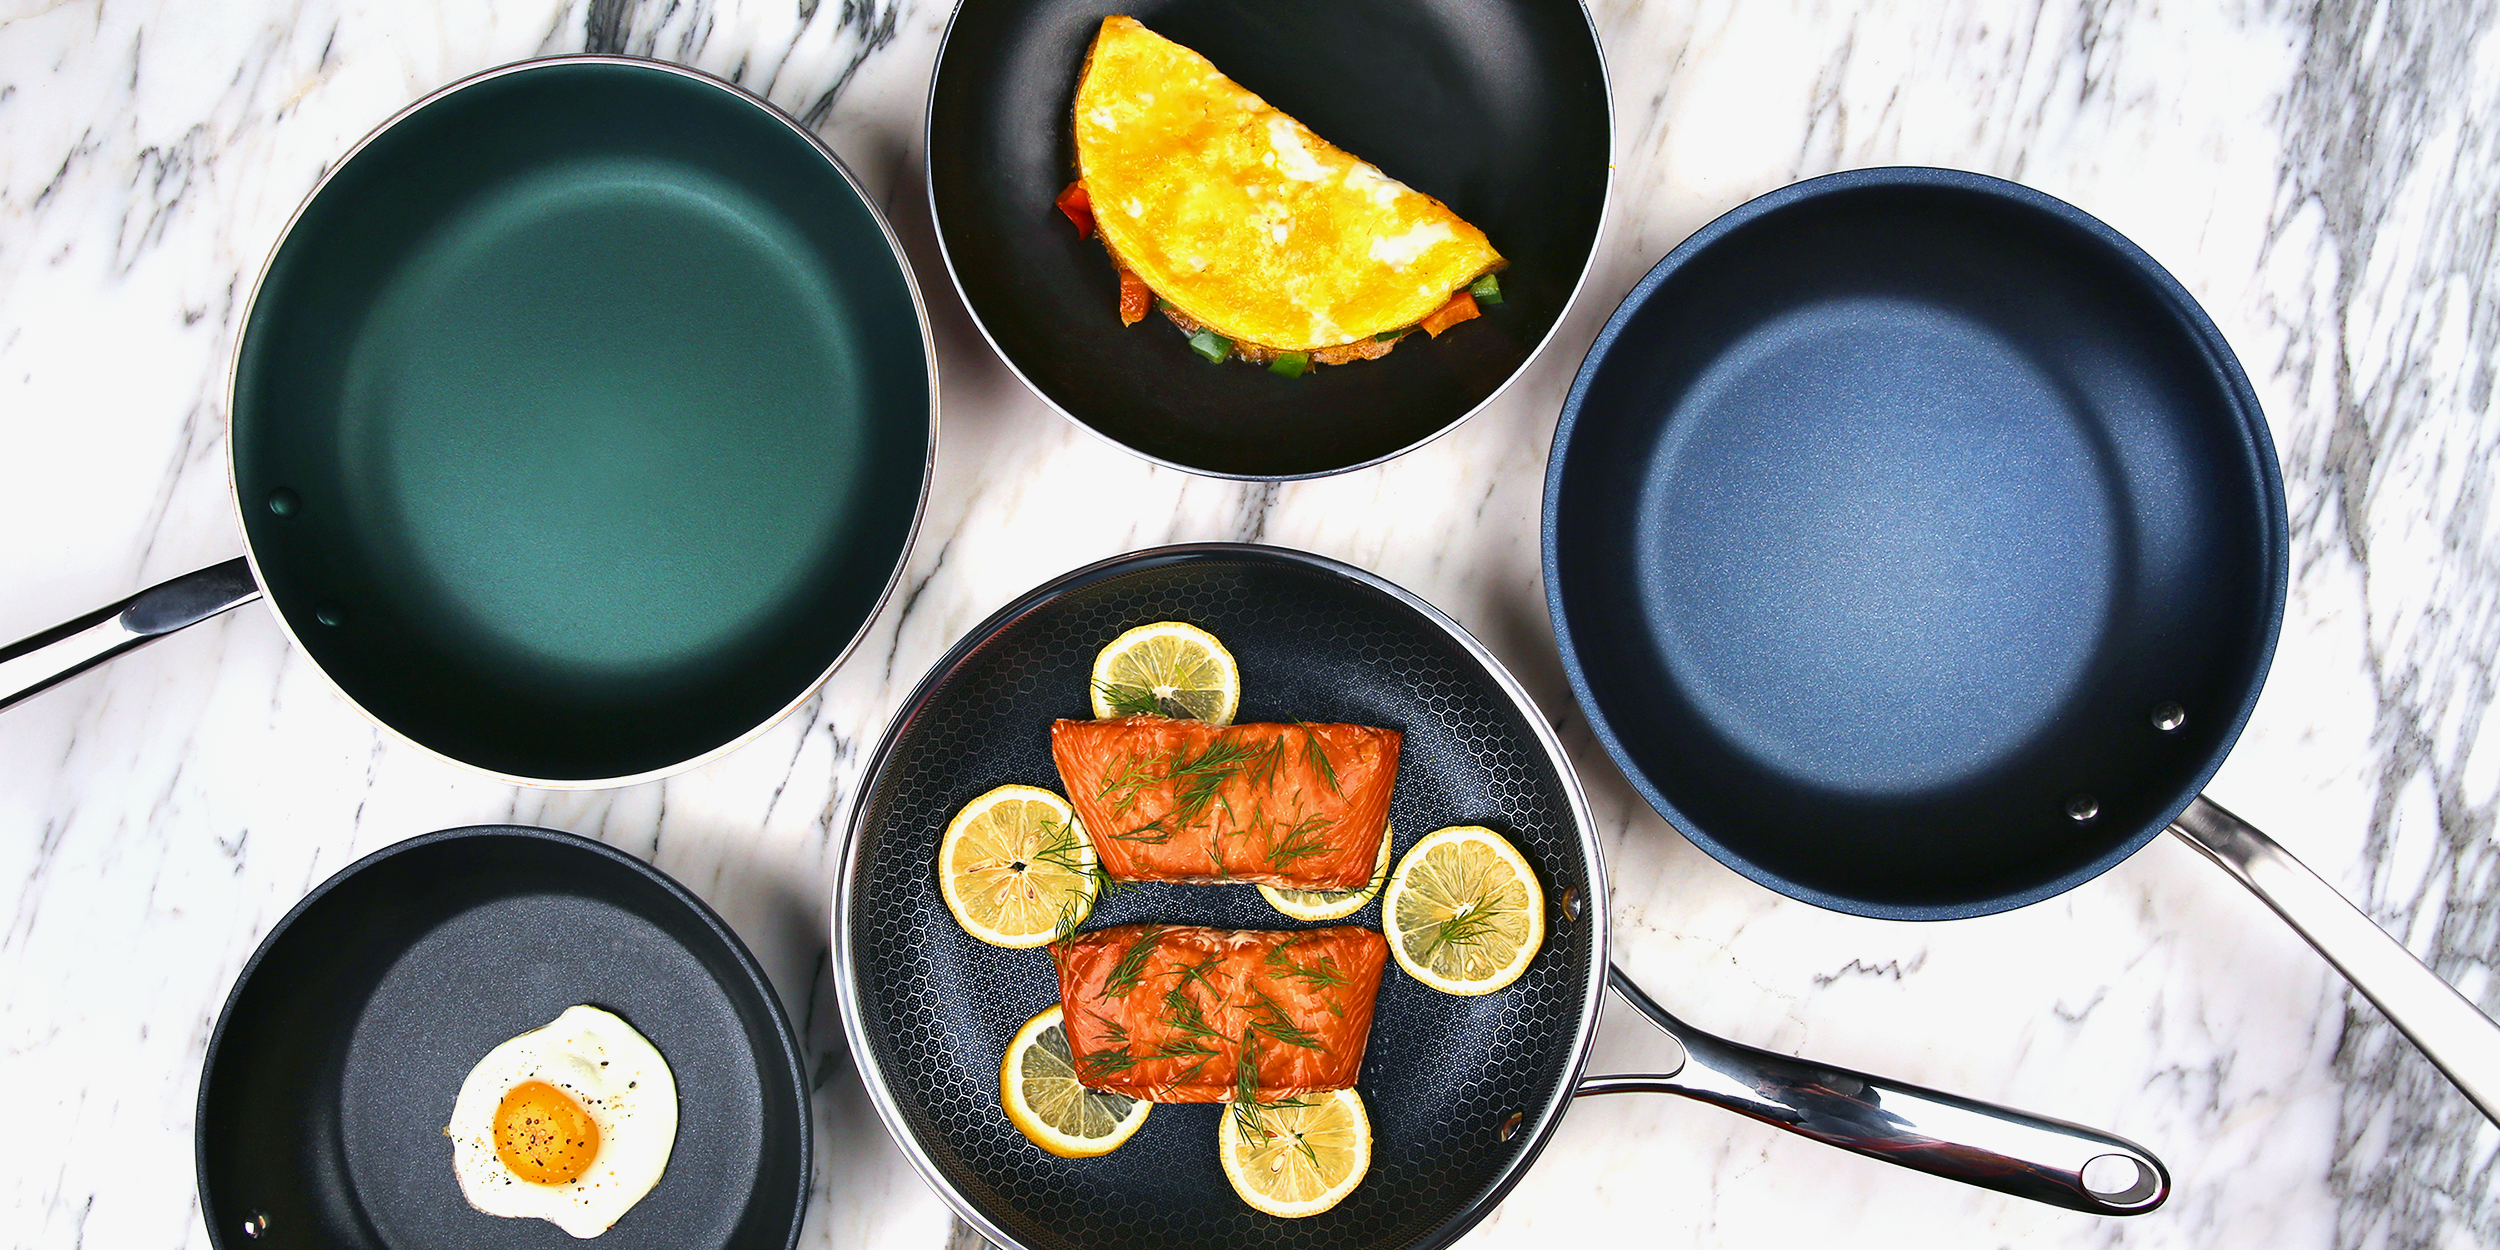 We Found the Best Nonstick Pans After Cooking Over 100 Meals